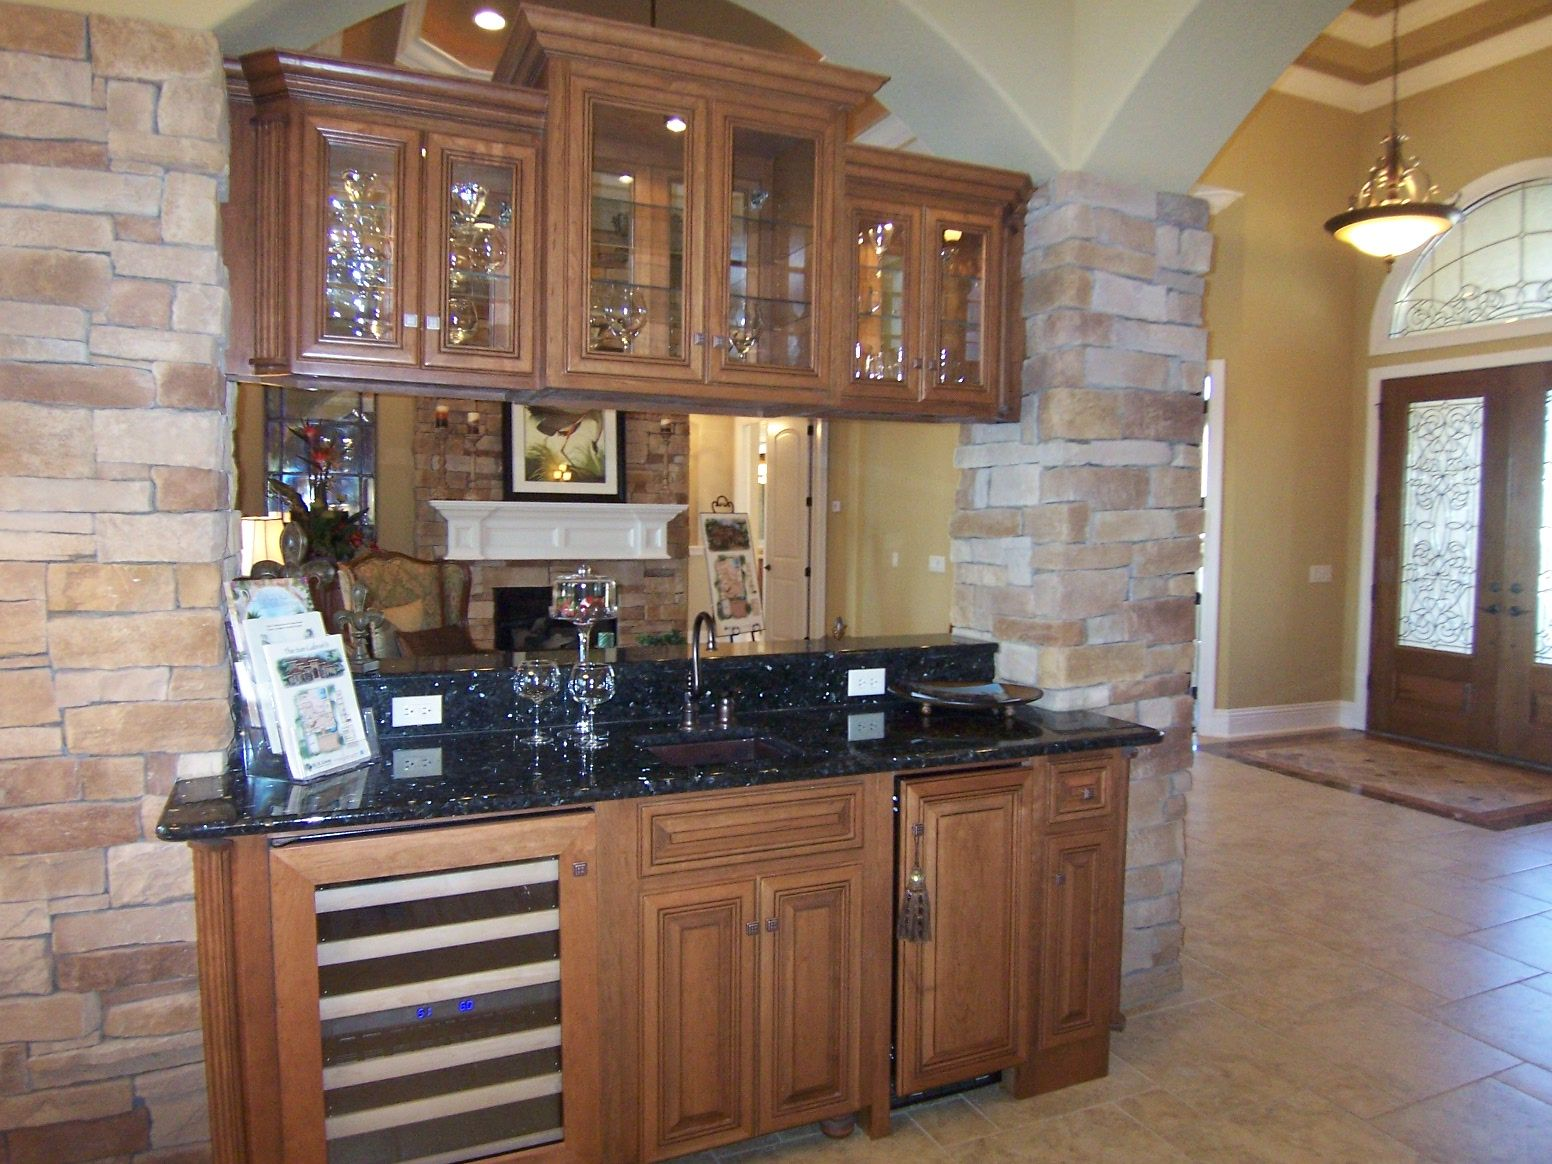 Hickory Cabinets With Doublesided Glass Doors Floating Between Stone Columns Make A Great Room Divider With Less Hickory Cabinets Kitchen Cabinets Great Rooms